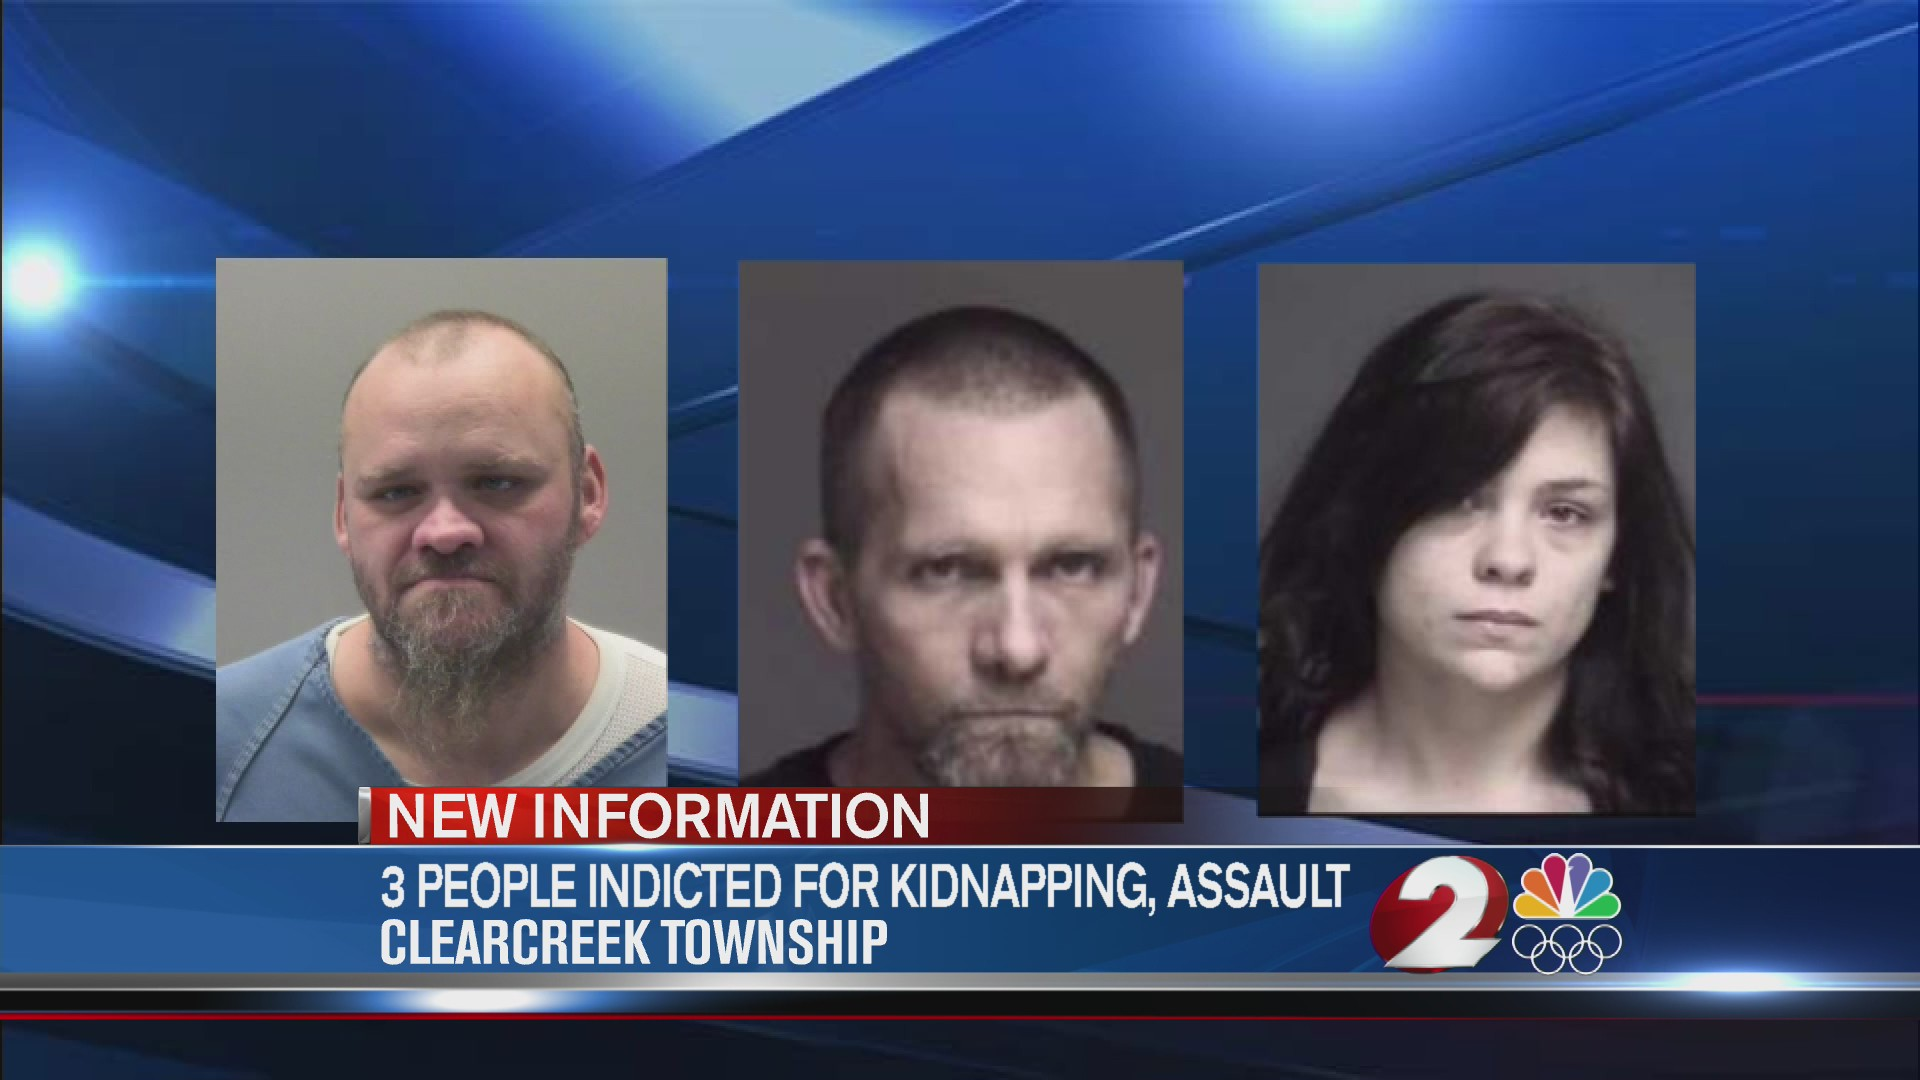 3 people indicted for kidnapping, assault